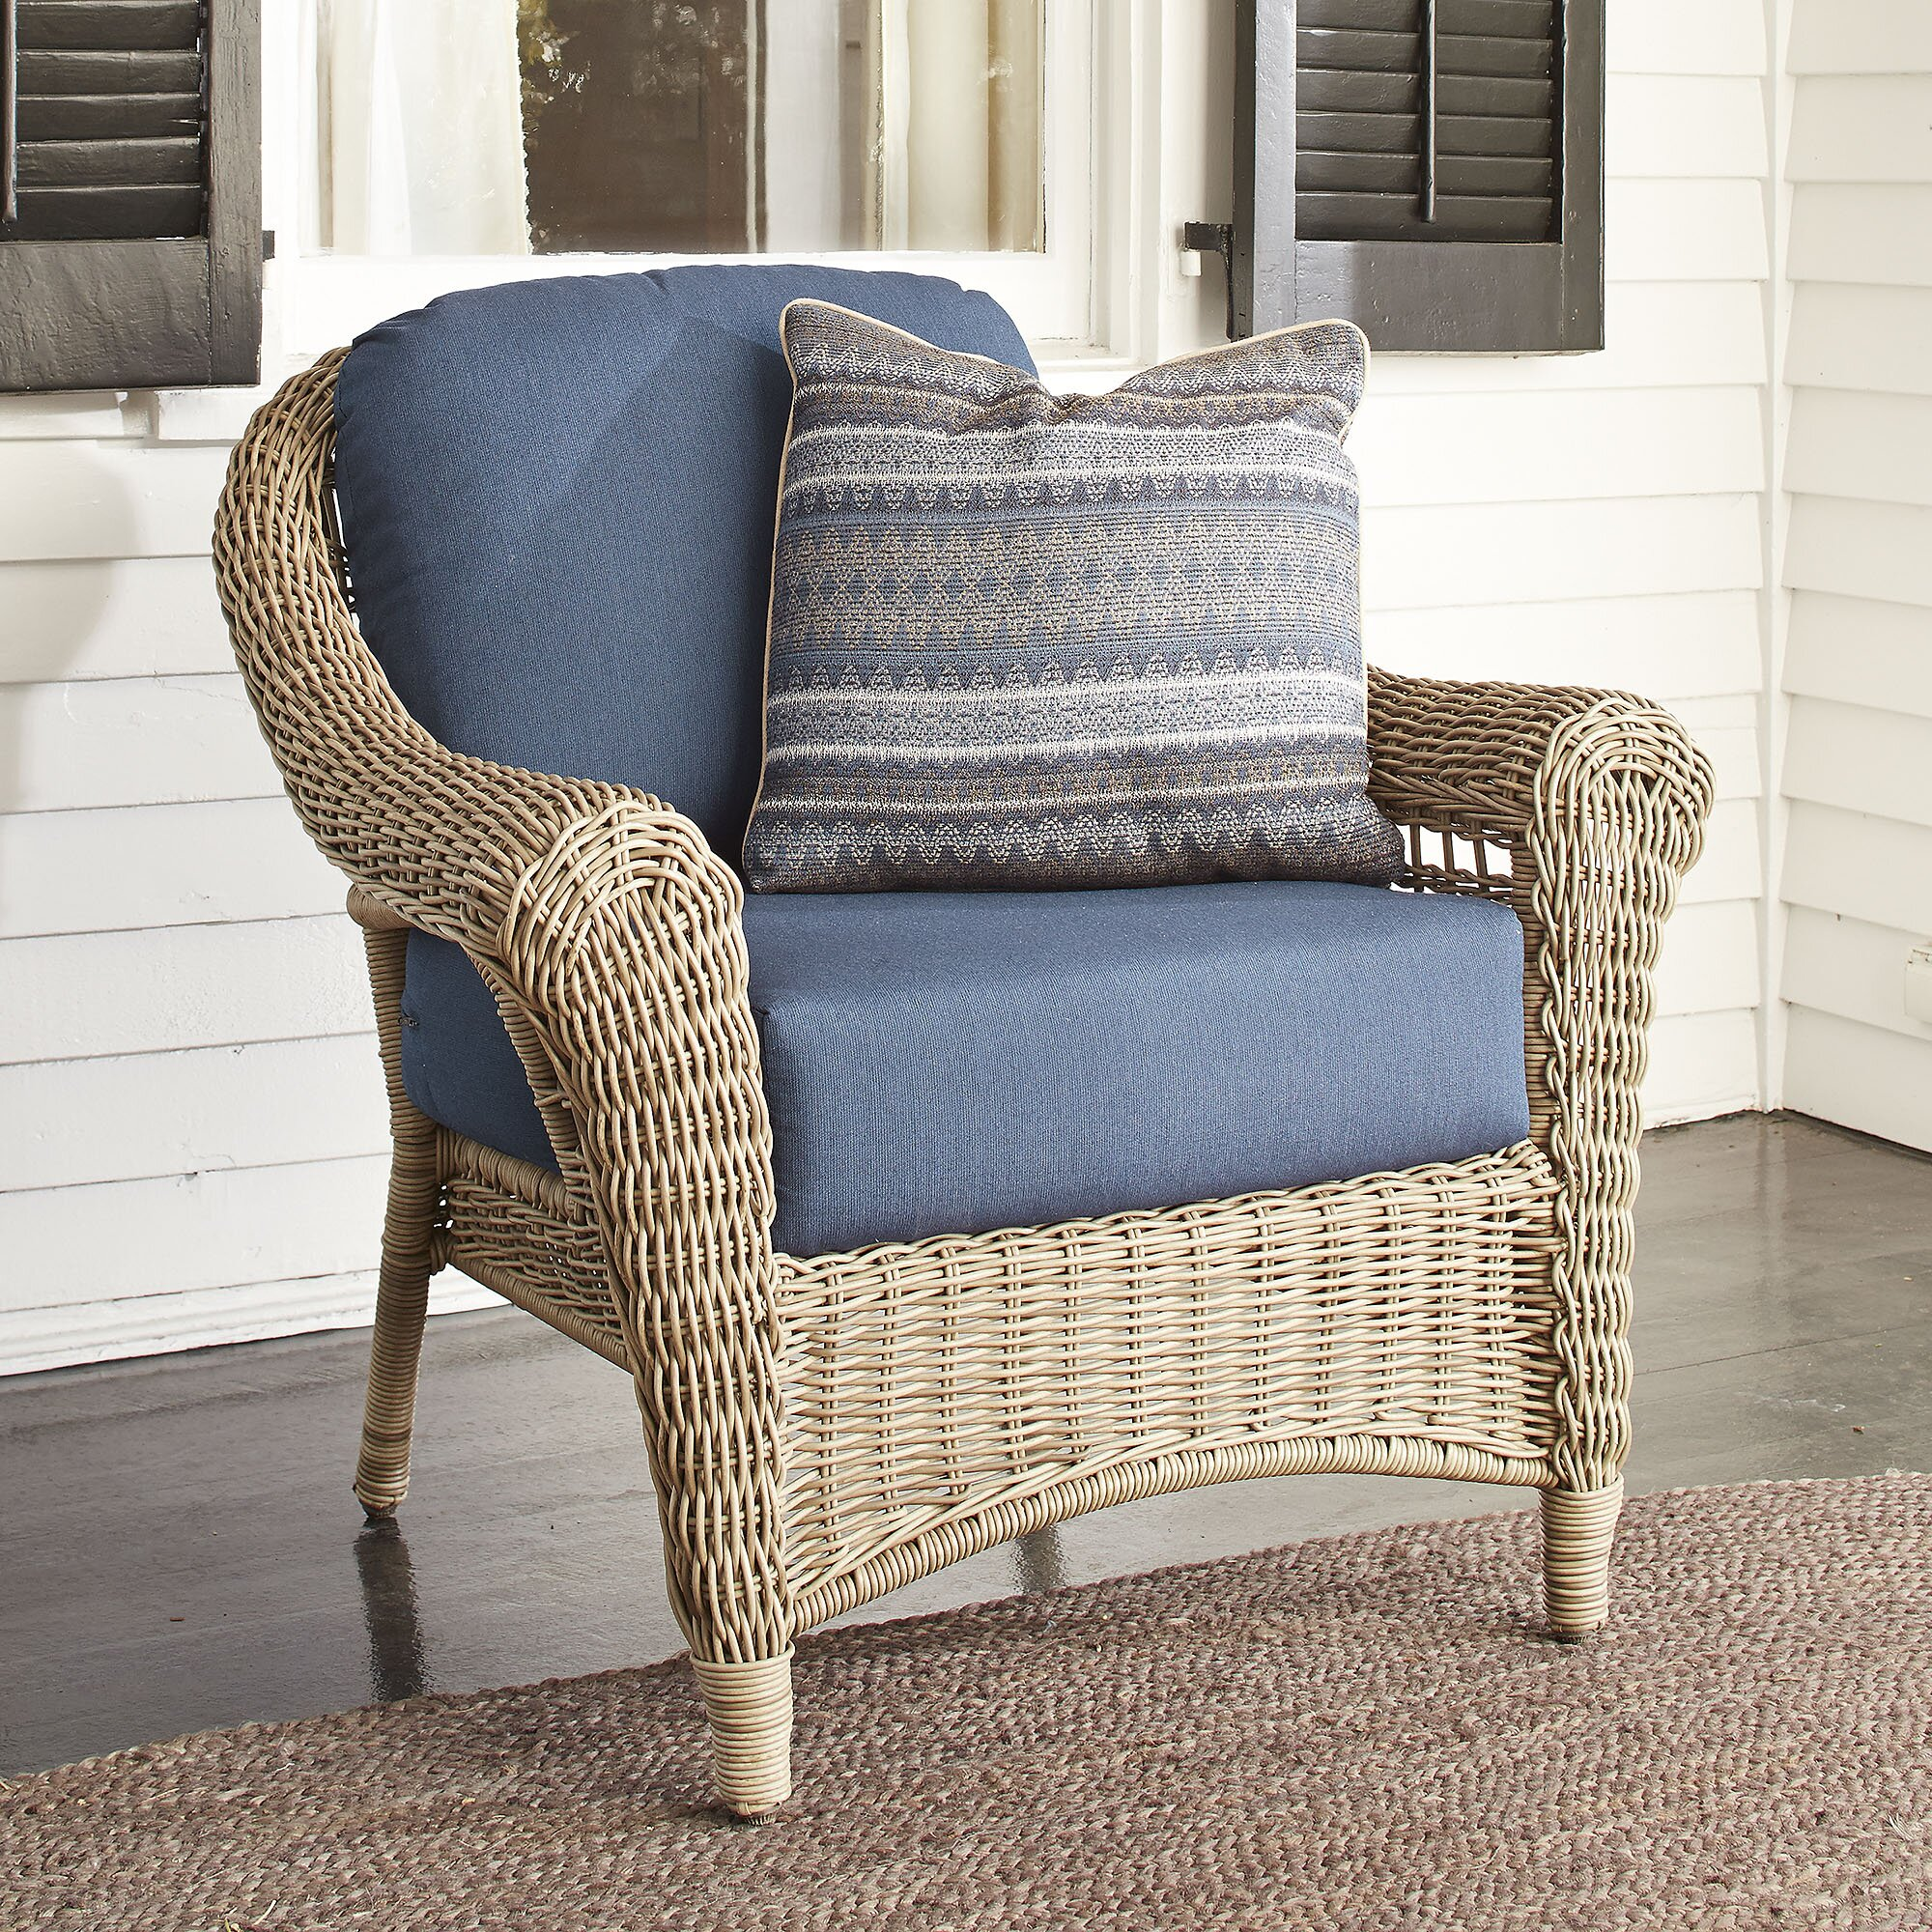 outdoor wicker furniture with sunbrella cushions. outdoor wicker furniture with sunbrella cushions simplylushliving o